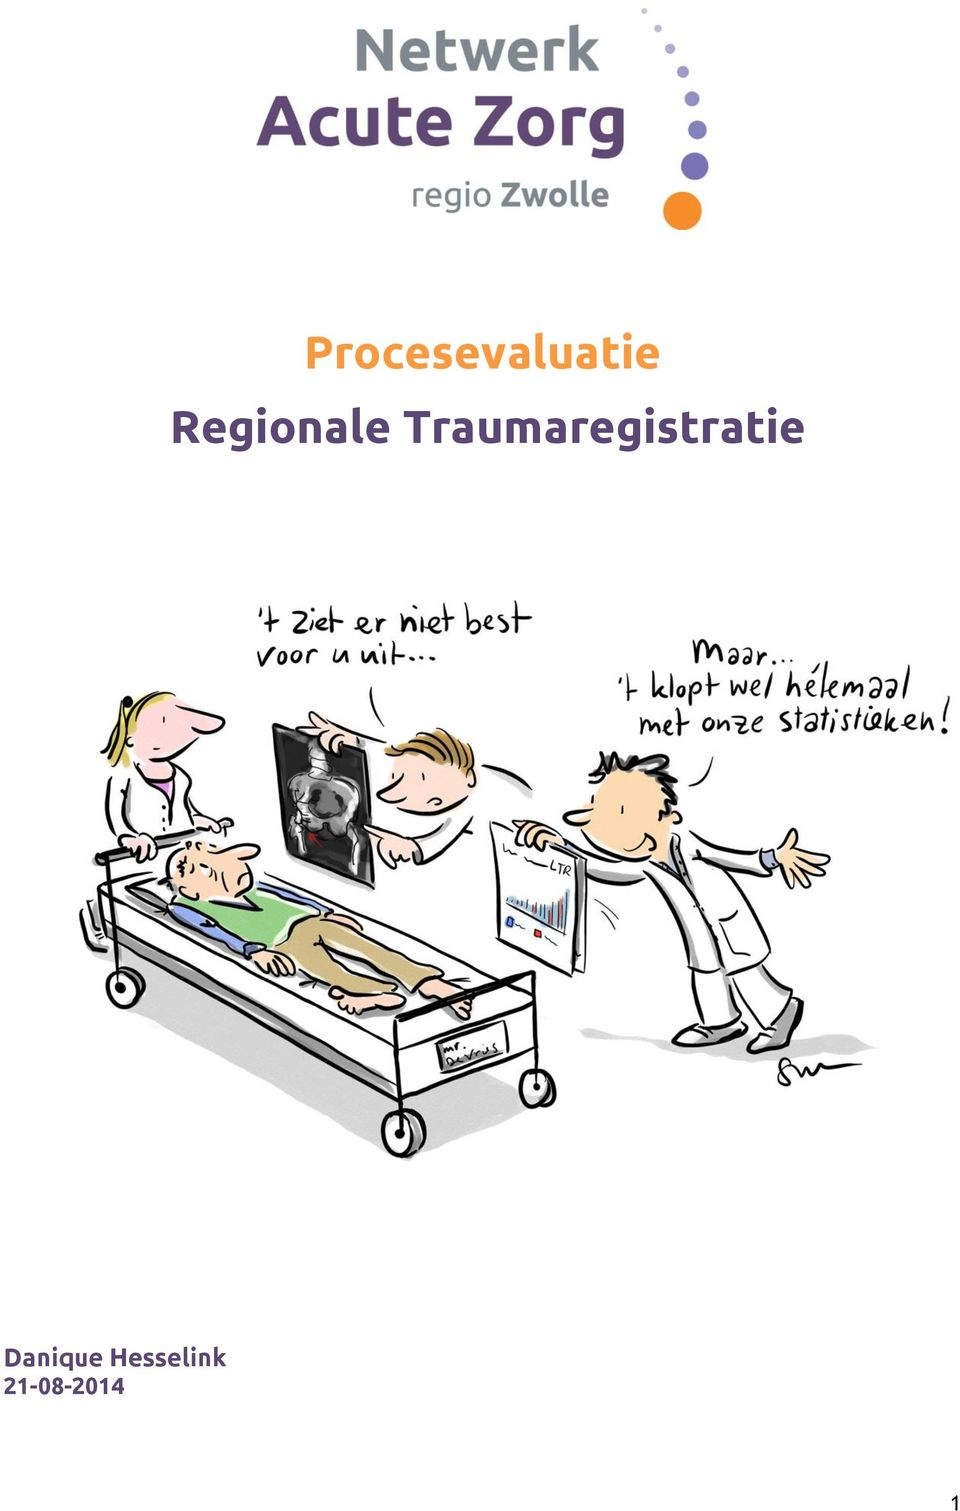 Traumaregistratie